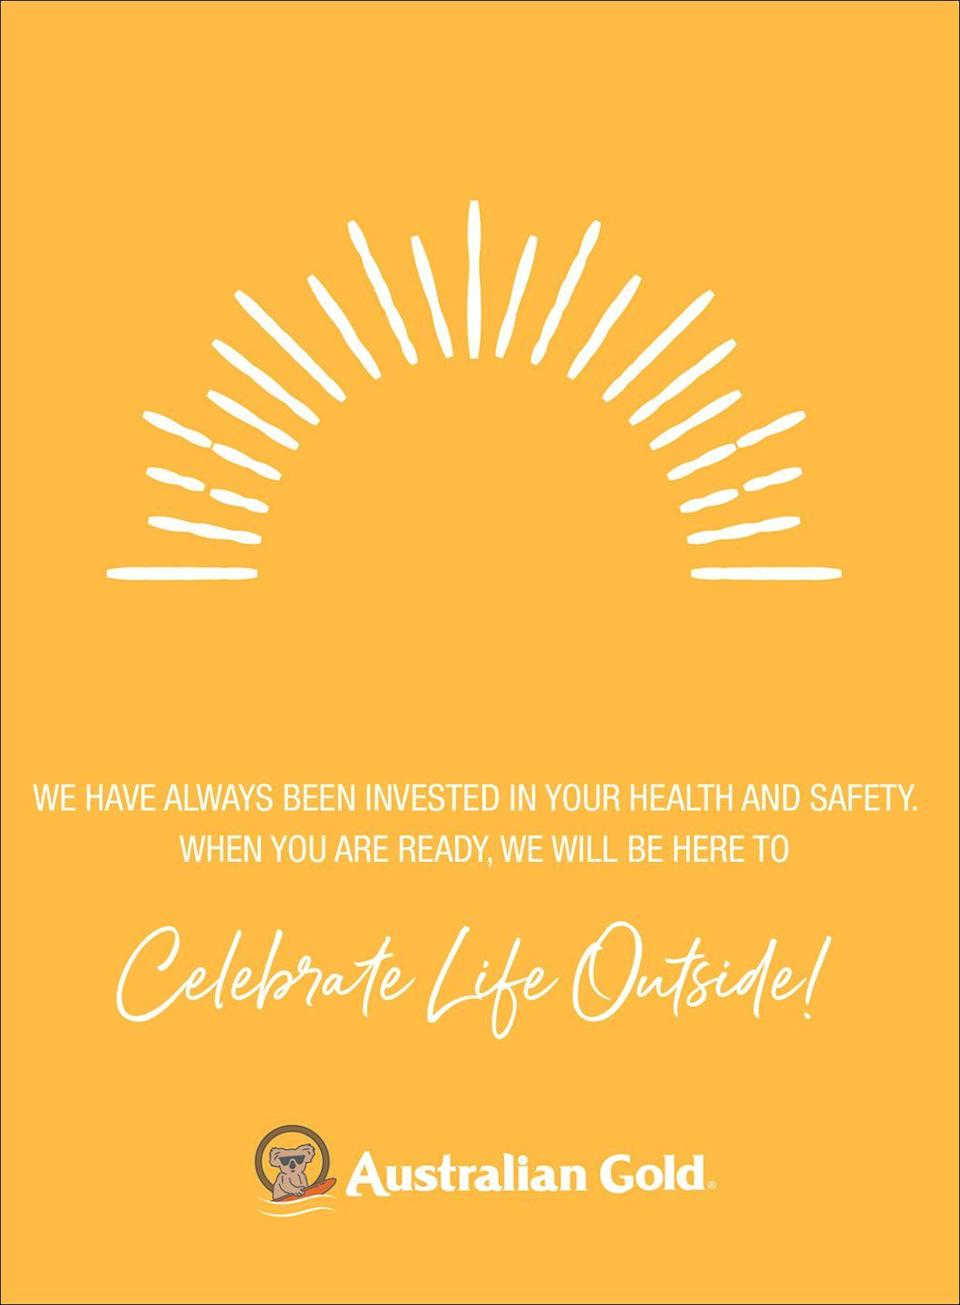 <p>We have always been invested in your health and safety. When you are ready, we will be here to celebrate life outside! </p>